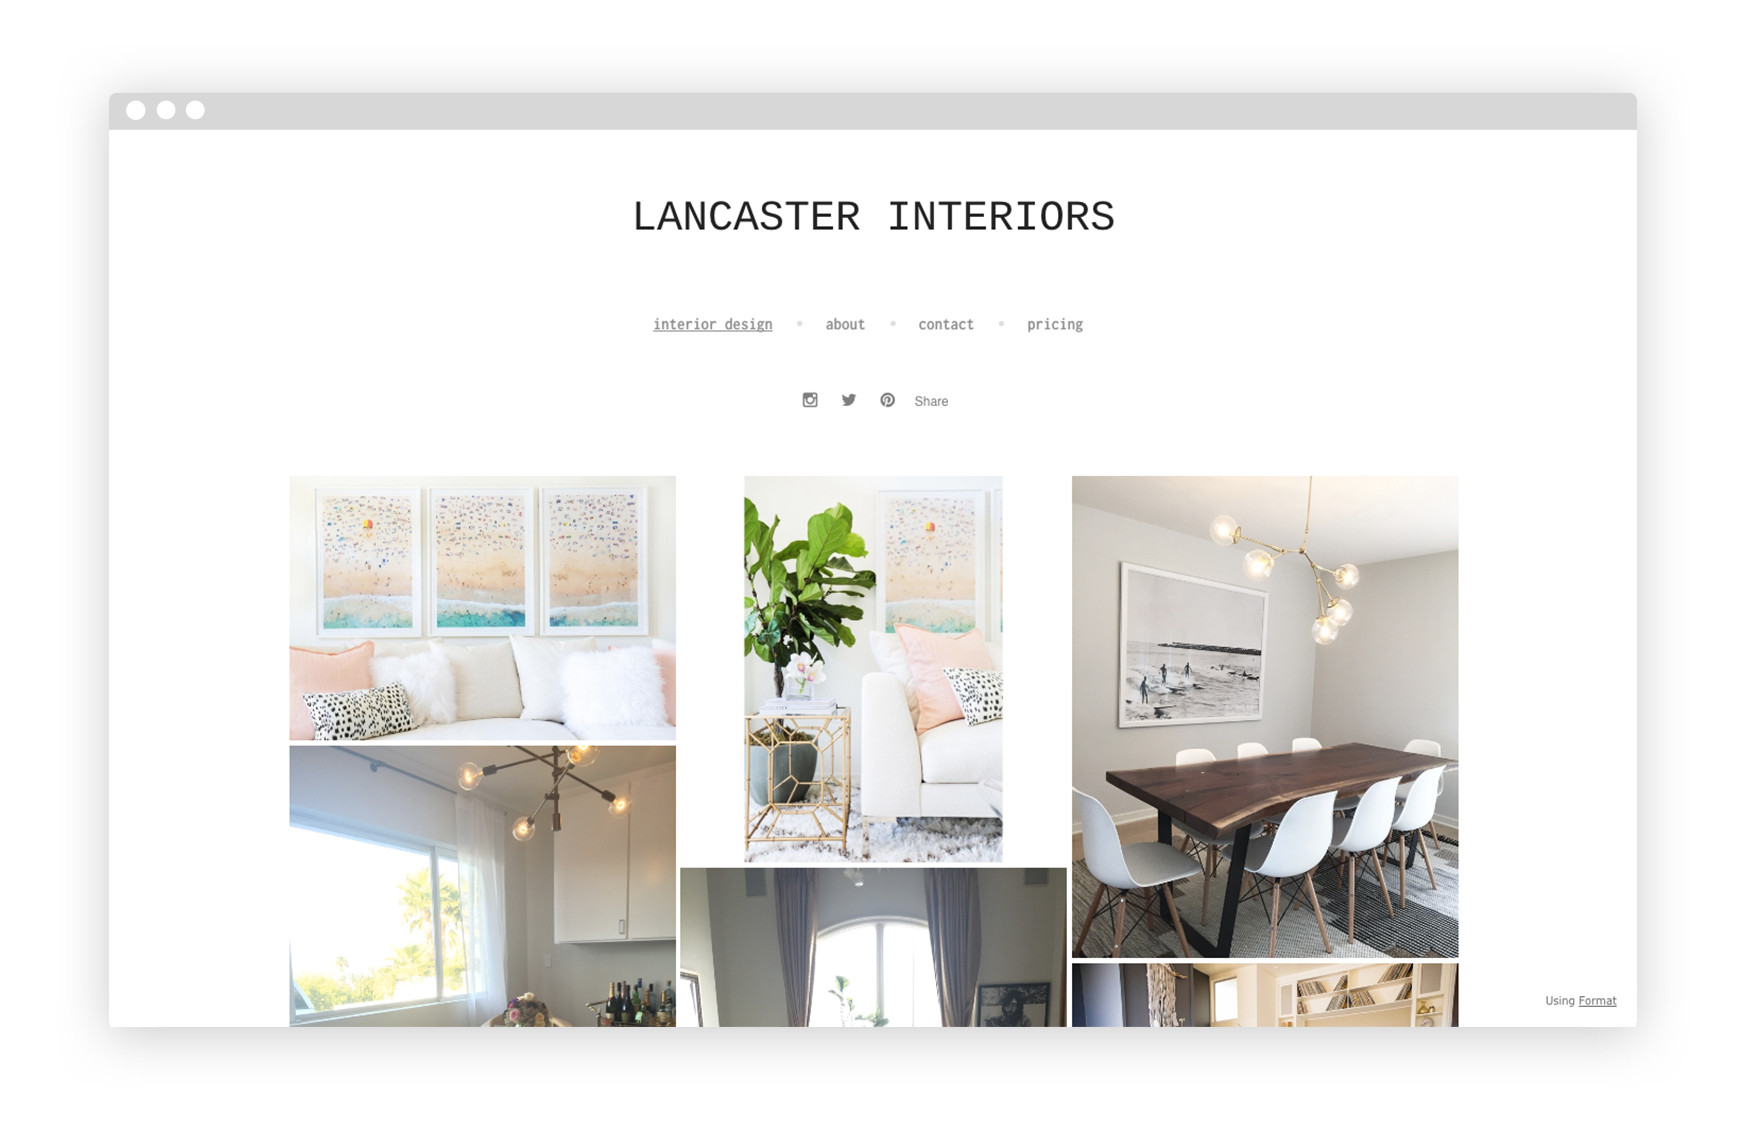 12 interior design portfolio website examples we love Fit interior design portfolio